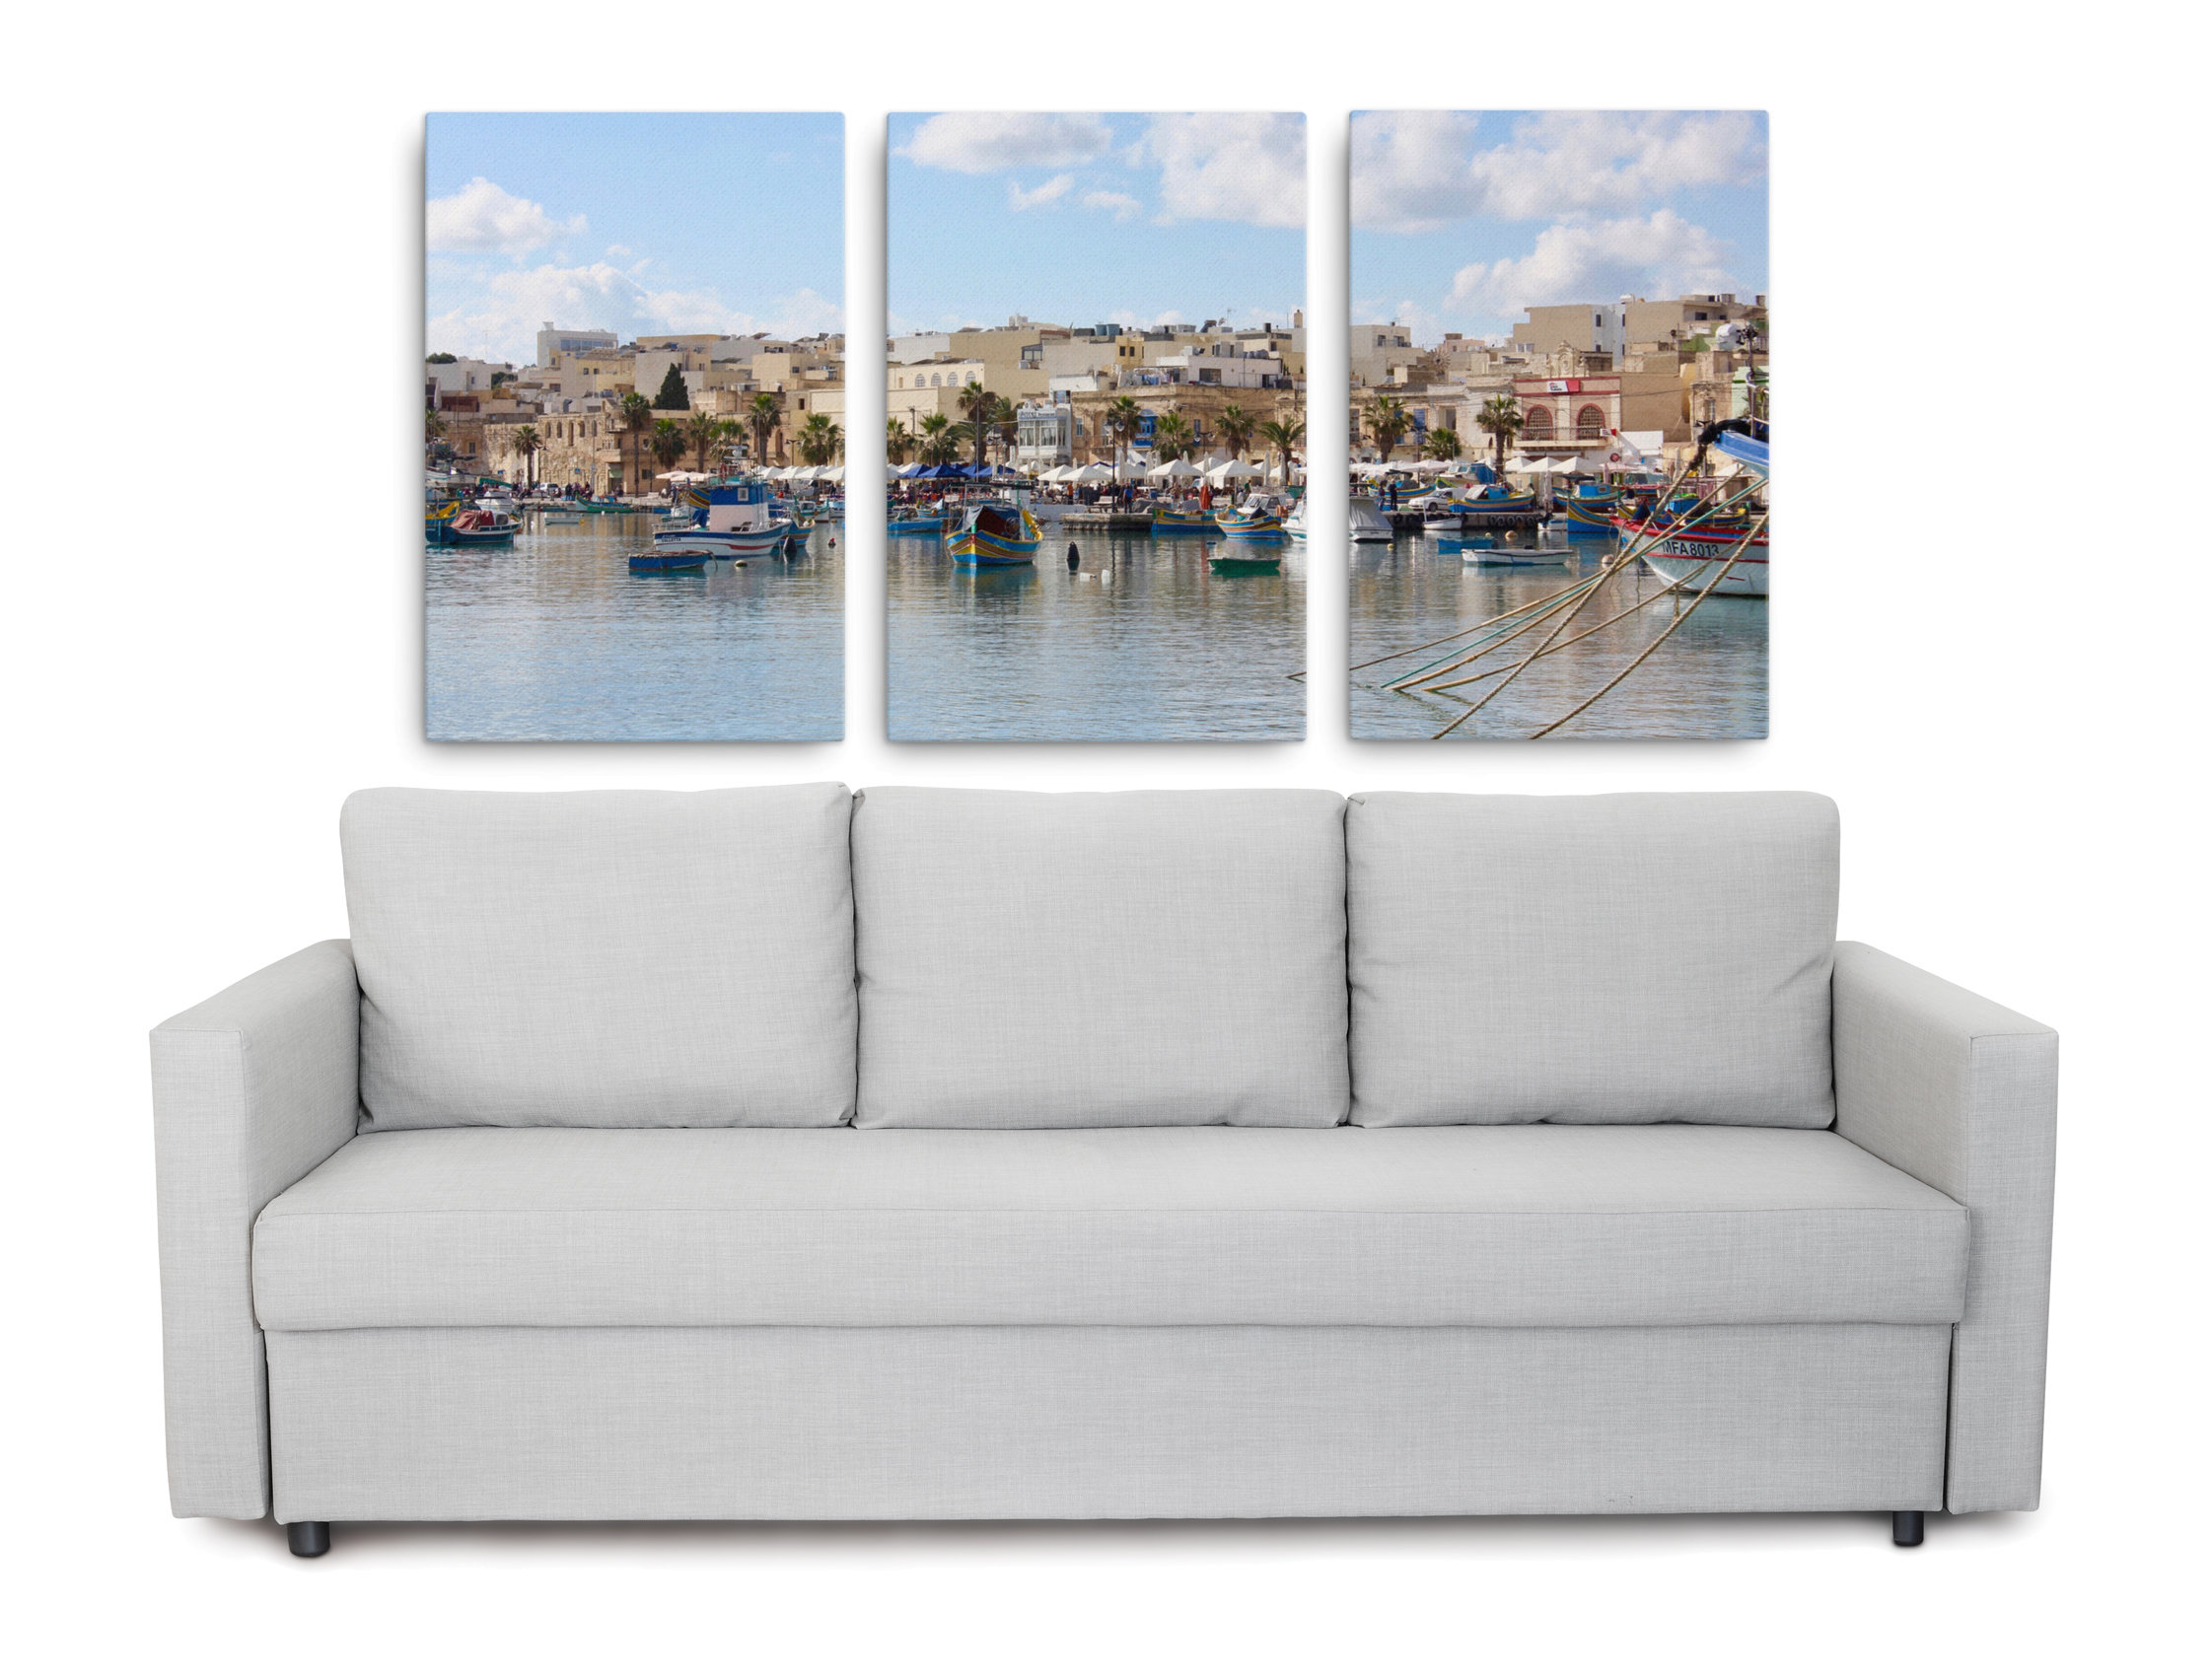 Product picture of a 3-piece set of canvases with Pictures of Malta